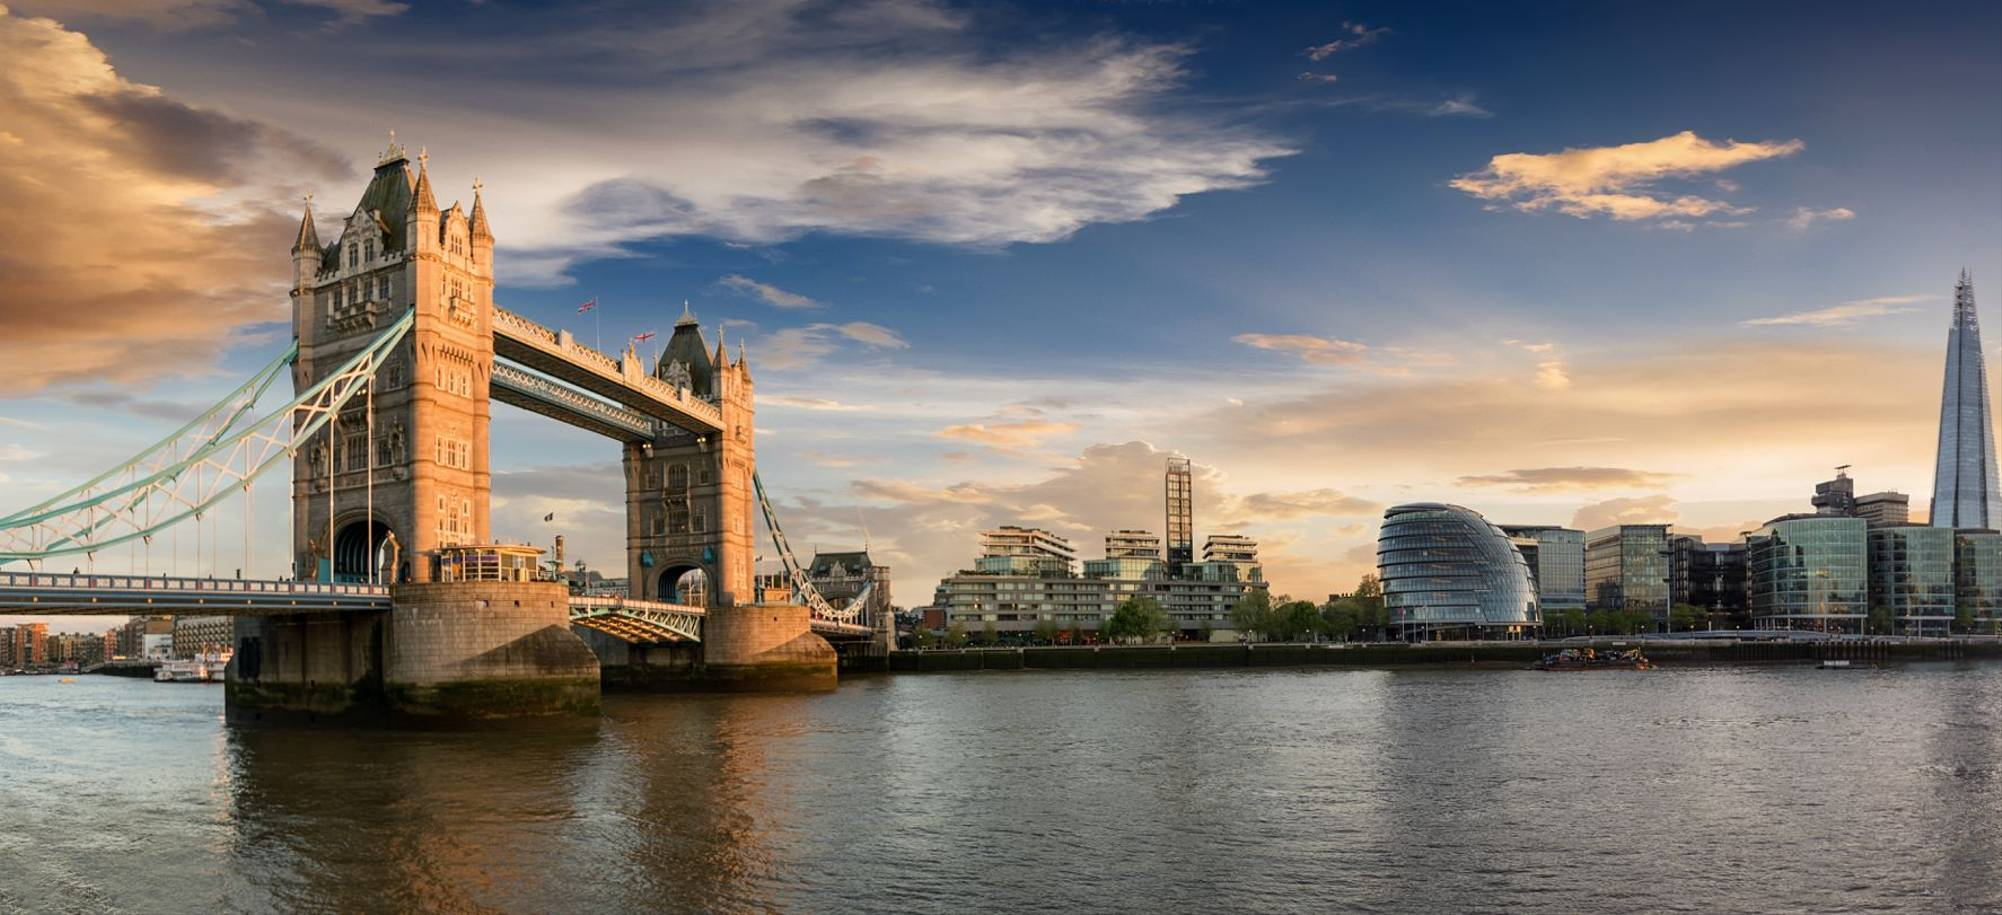 London2 - Tower Bridge - Itinerary Desktop .jpg